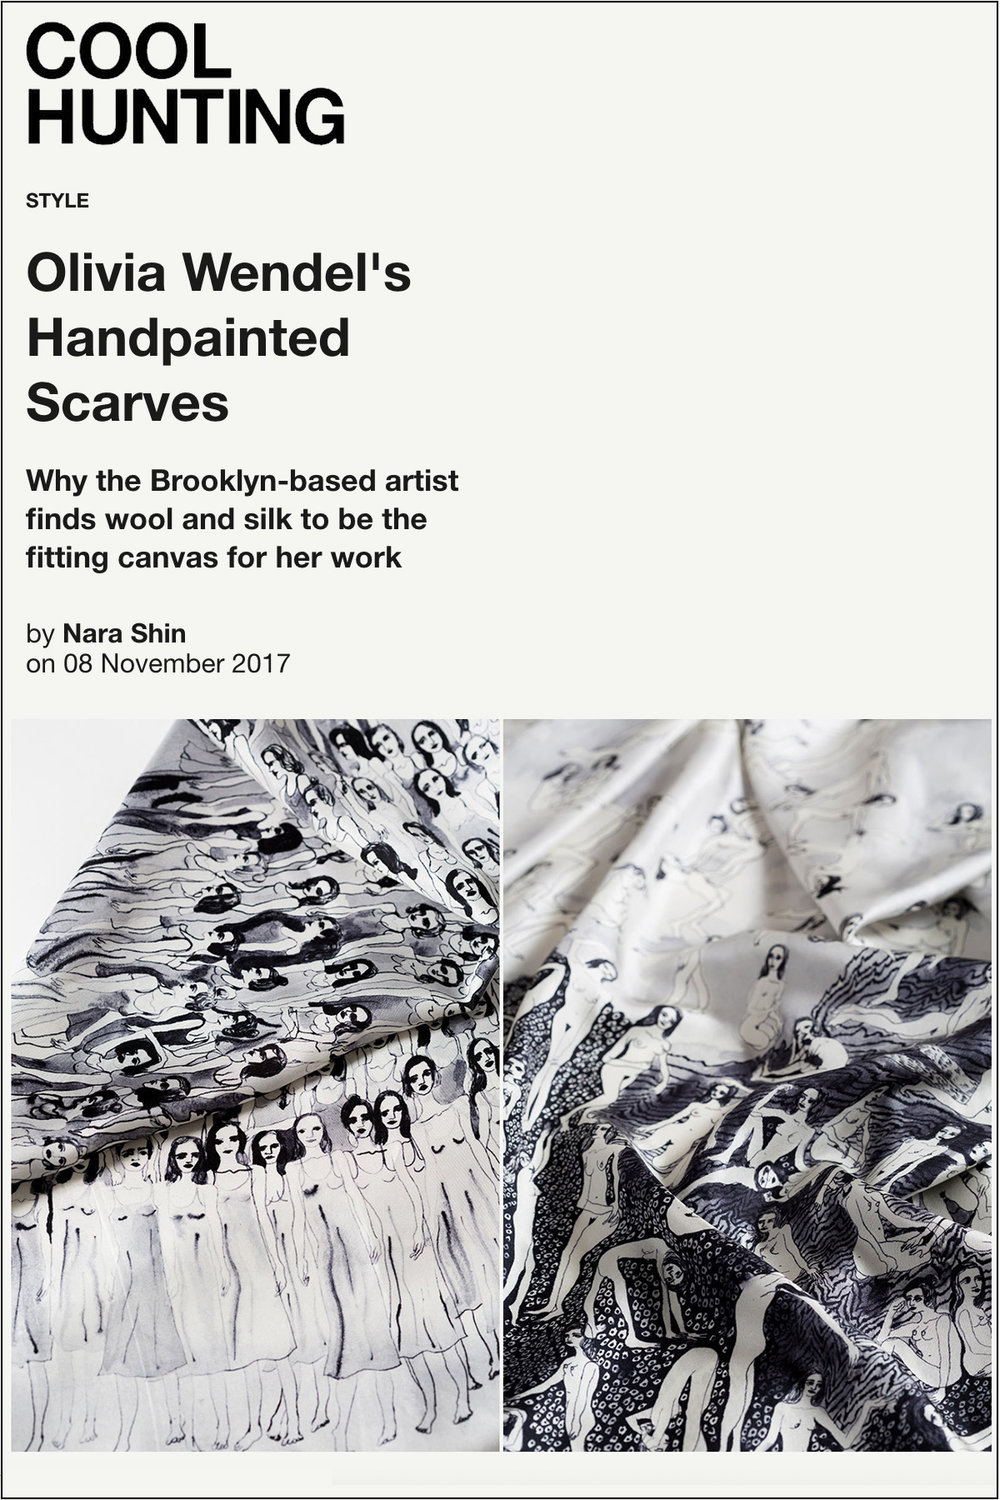 Cool Hunting: Olivia Wendel's Handpainted Scarves   November 8, 2017